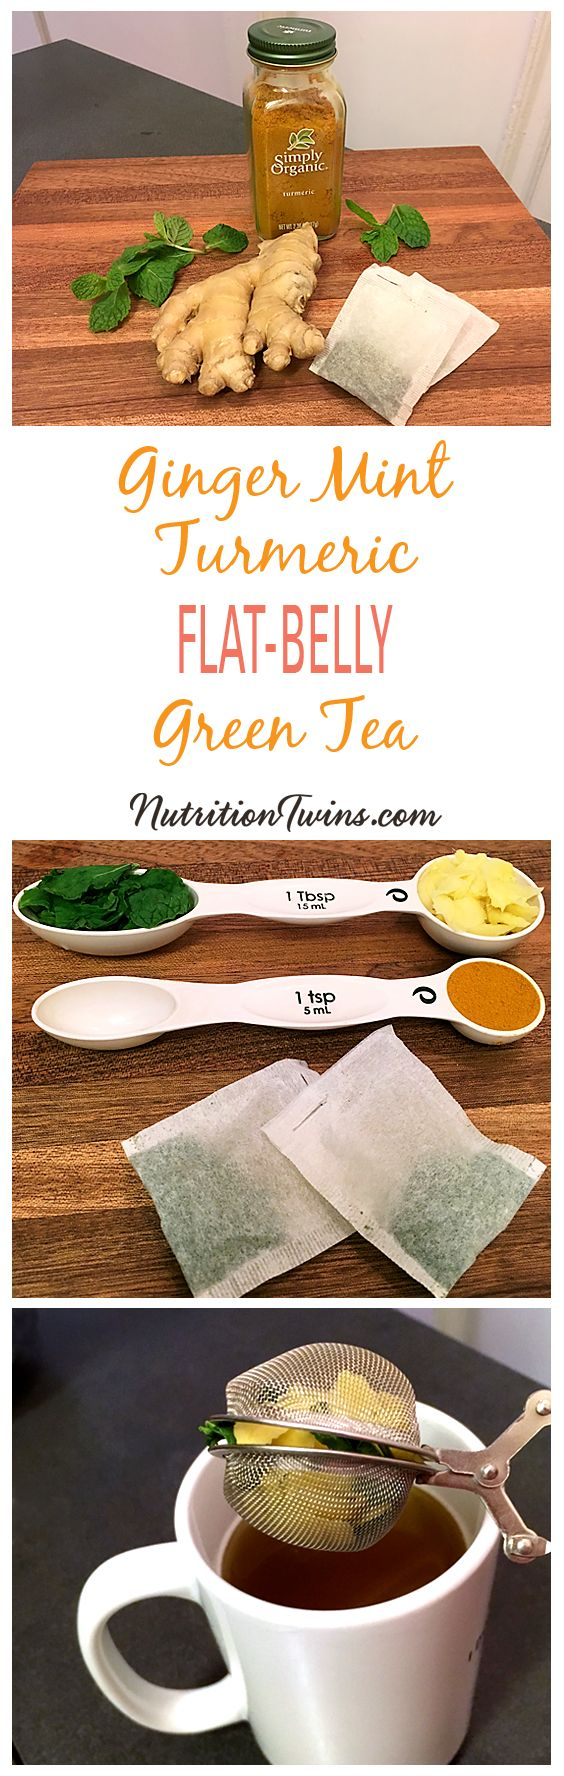 "Ginger Mint Turmeric Green Tea Flat-Belly ""Detox"" 